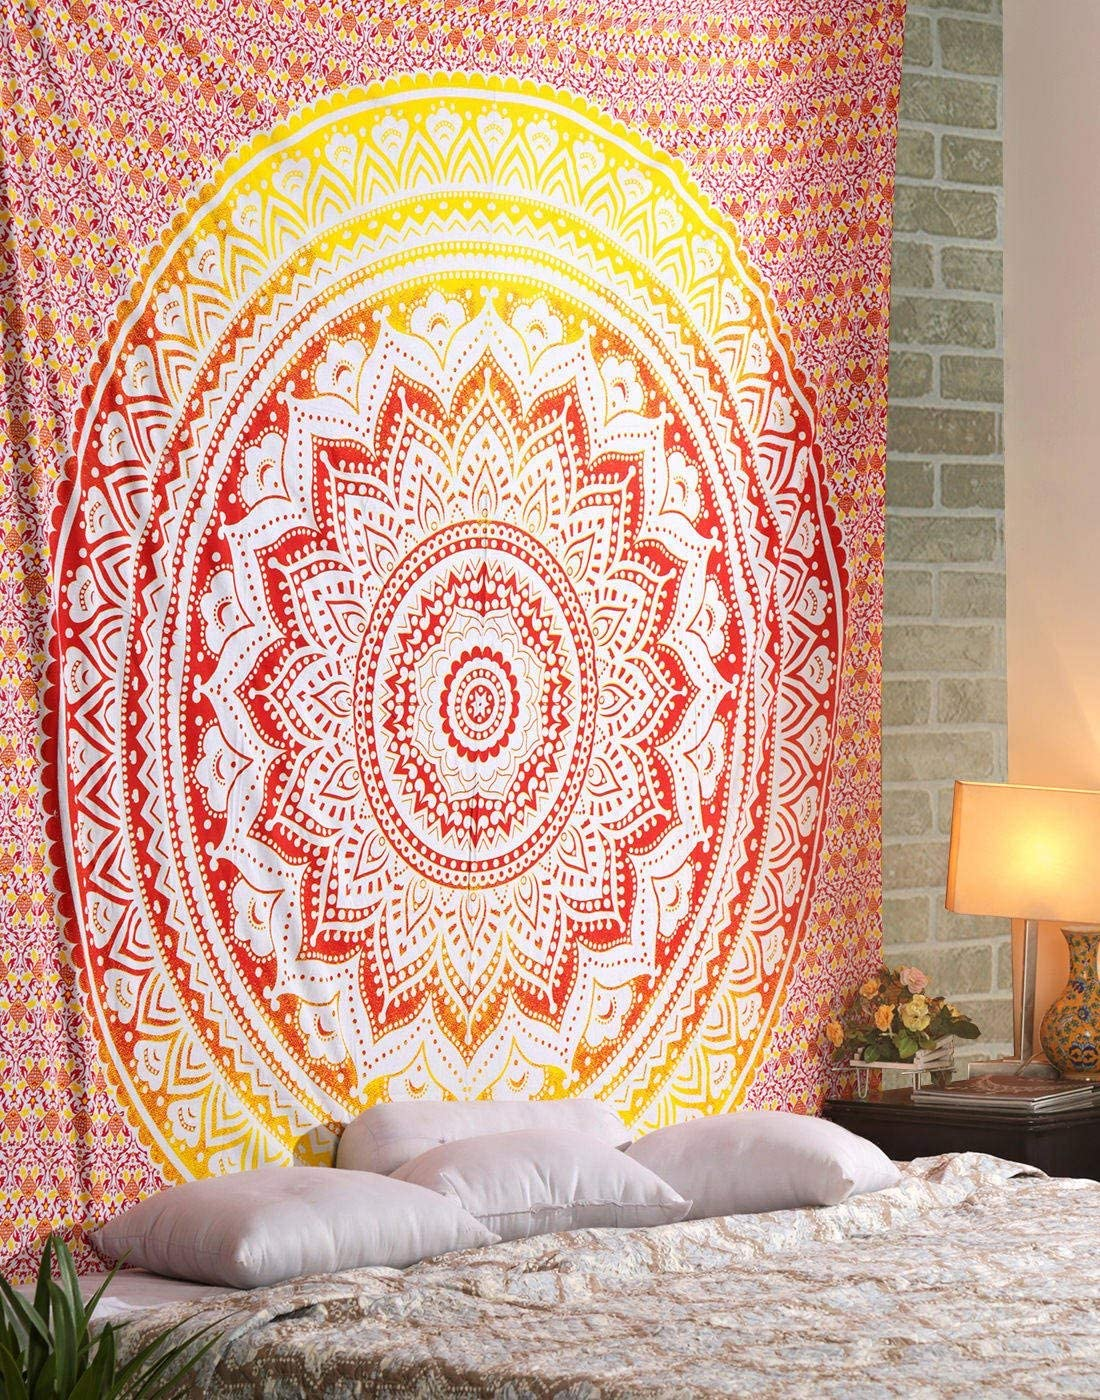 Marubhumi Psychedelic Mandala Tapestry Wall Hanging, Beach Throw Hippie Tapestries Picnic Sheet Wall Decor Wall Art Bedroom Decor, Orange and Yellow, Poster (76 x 101 Cms / 30 x 40 Inches)